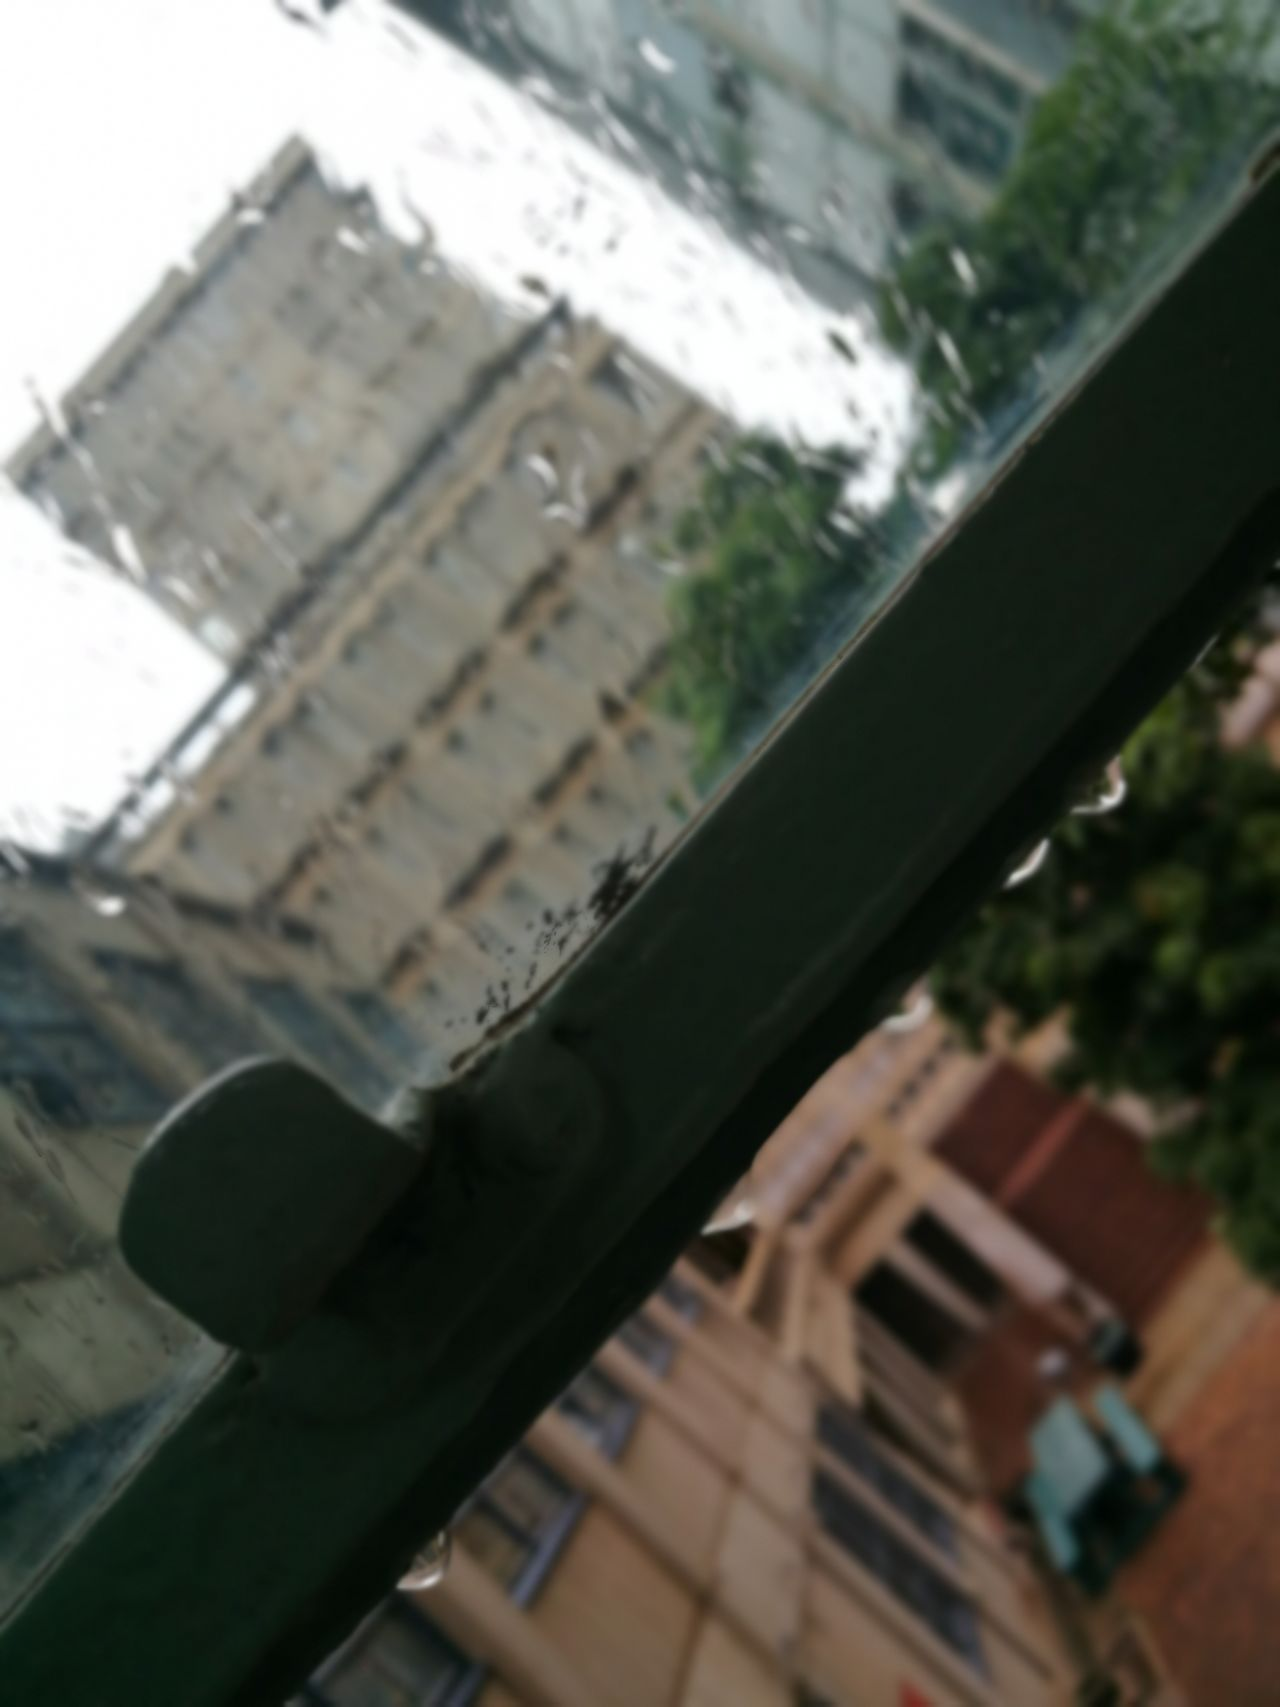 Built Structure Day No People Close-up Indoors  Architecture Sky Aesthetic Street Lifestyles Travel Staircase Window Building Bricks Wits University Johannesburg Architectural Design Unusual Rain Outdoor Art Cityscape Explore Outdoors Archival